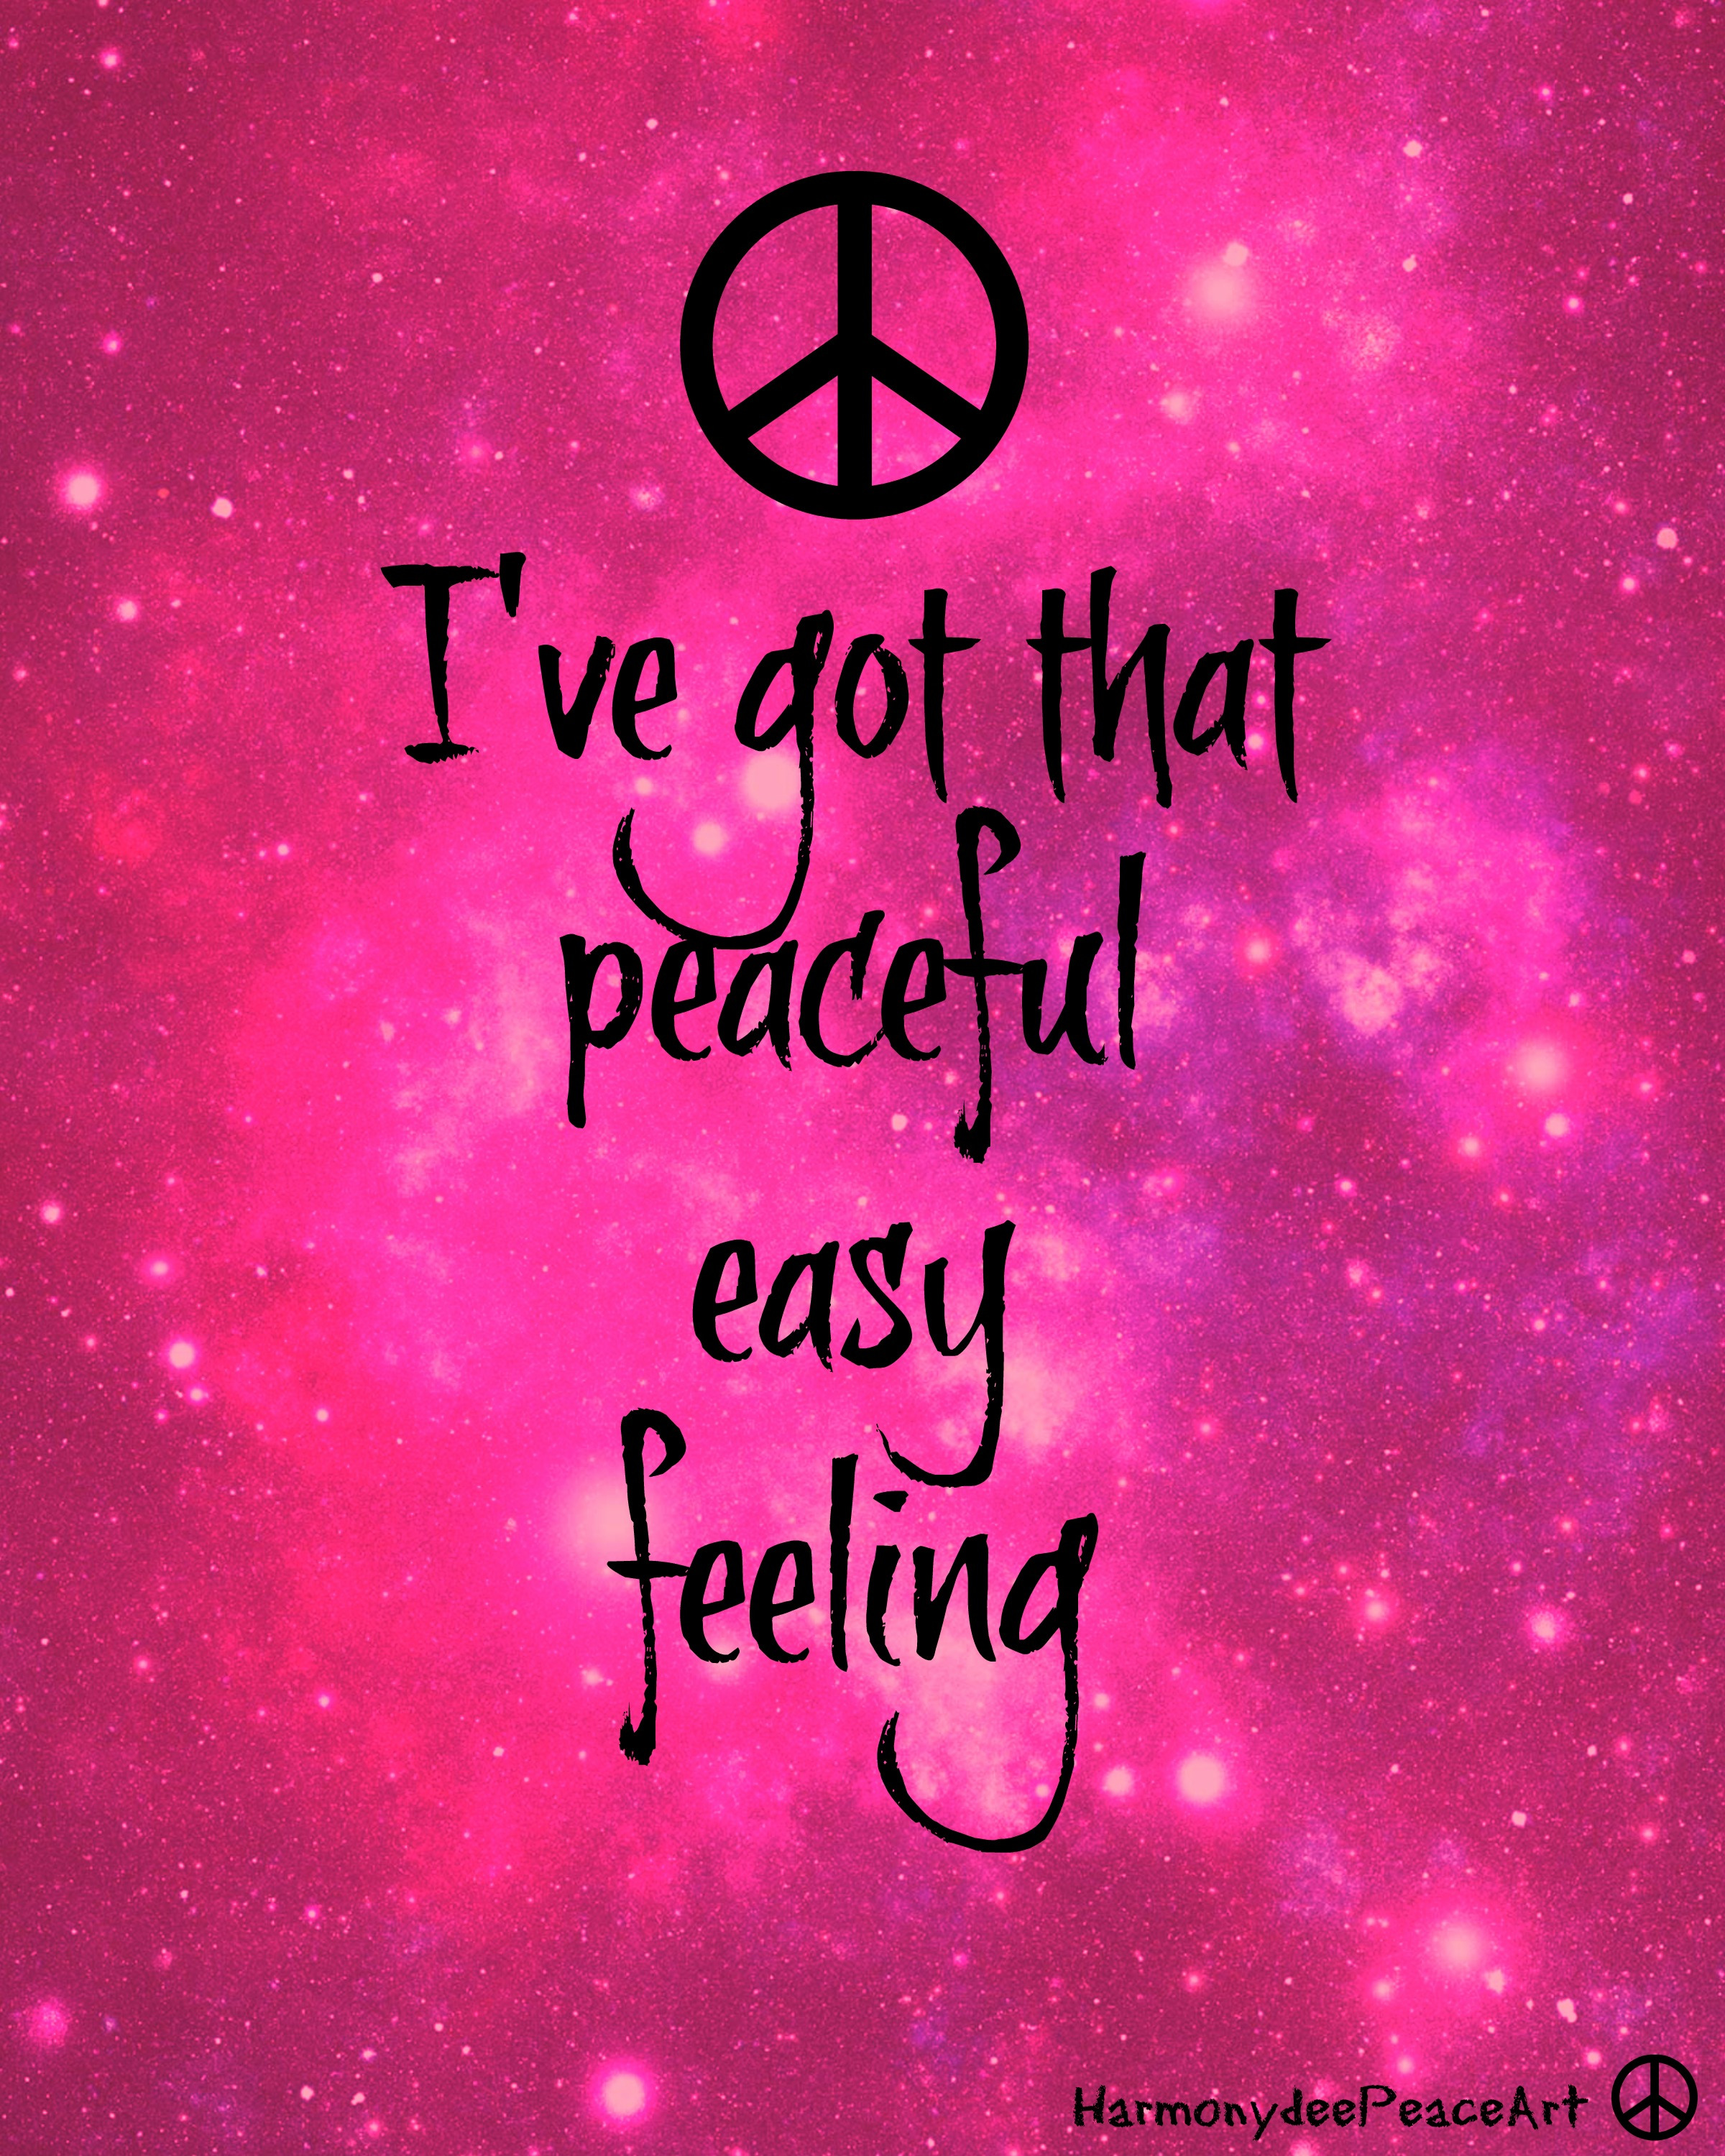 peacefuleasyfeeling